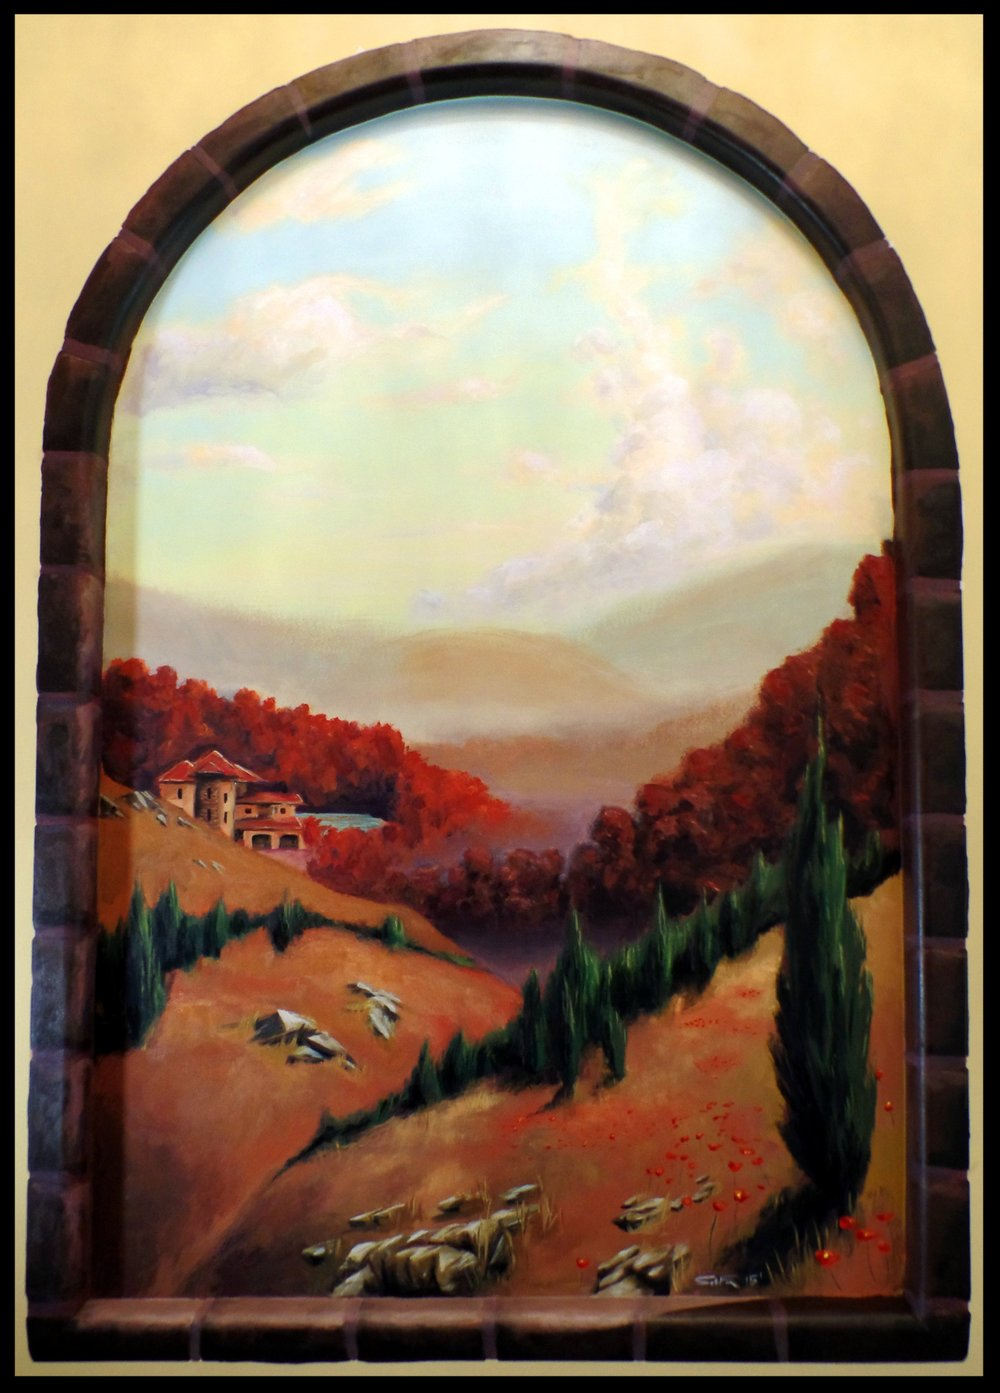 Tuscan Wall Mural 3' by 5'.jpg